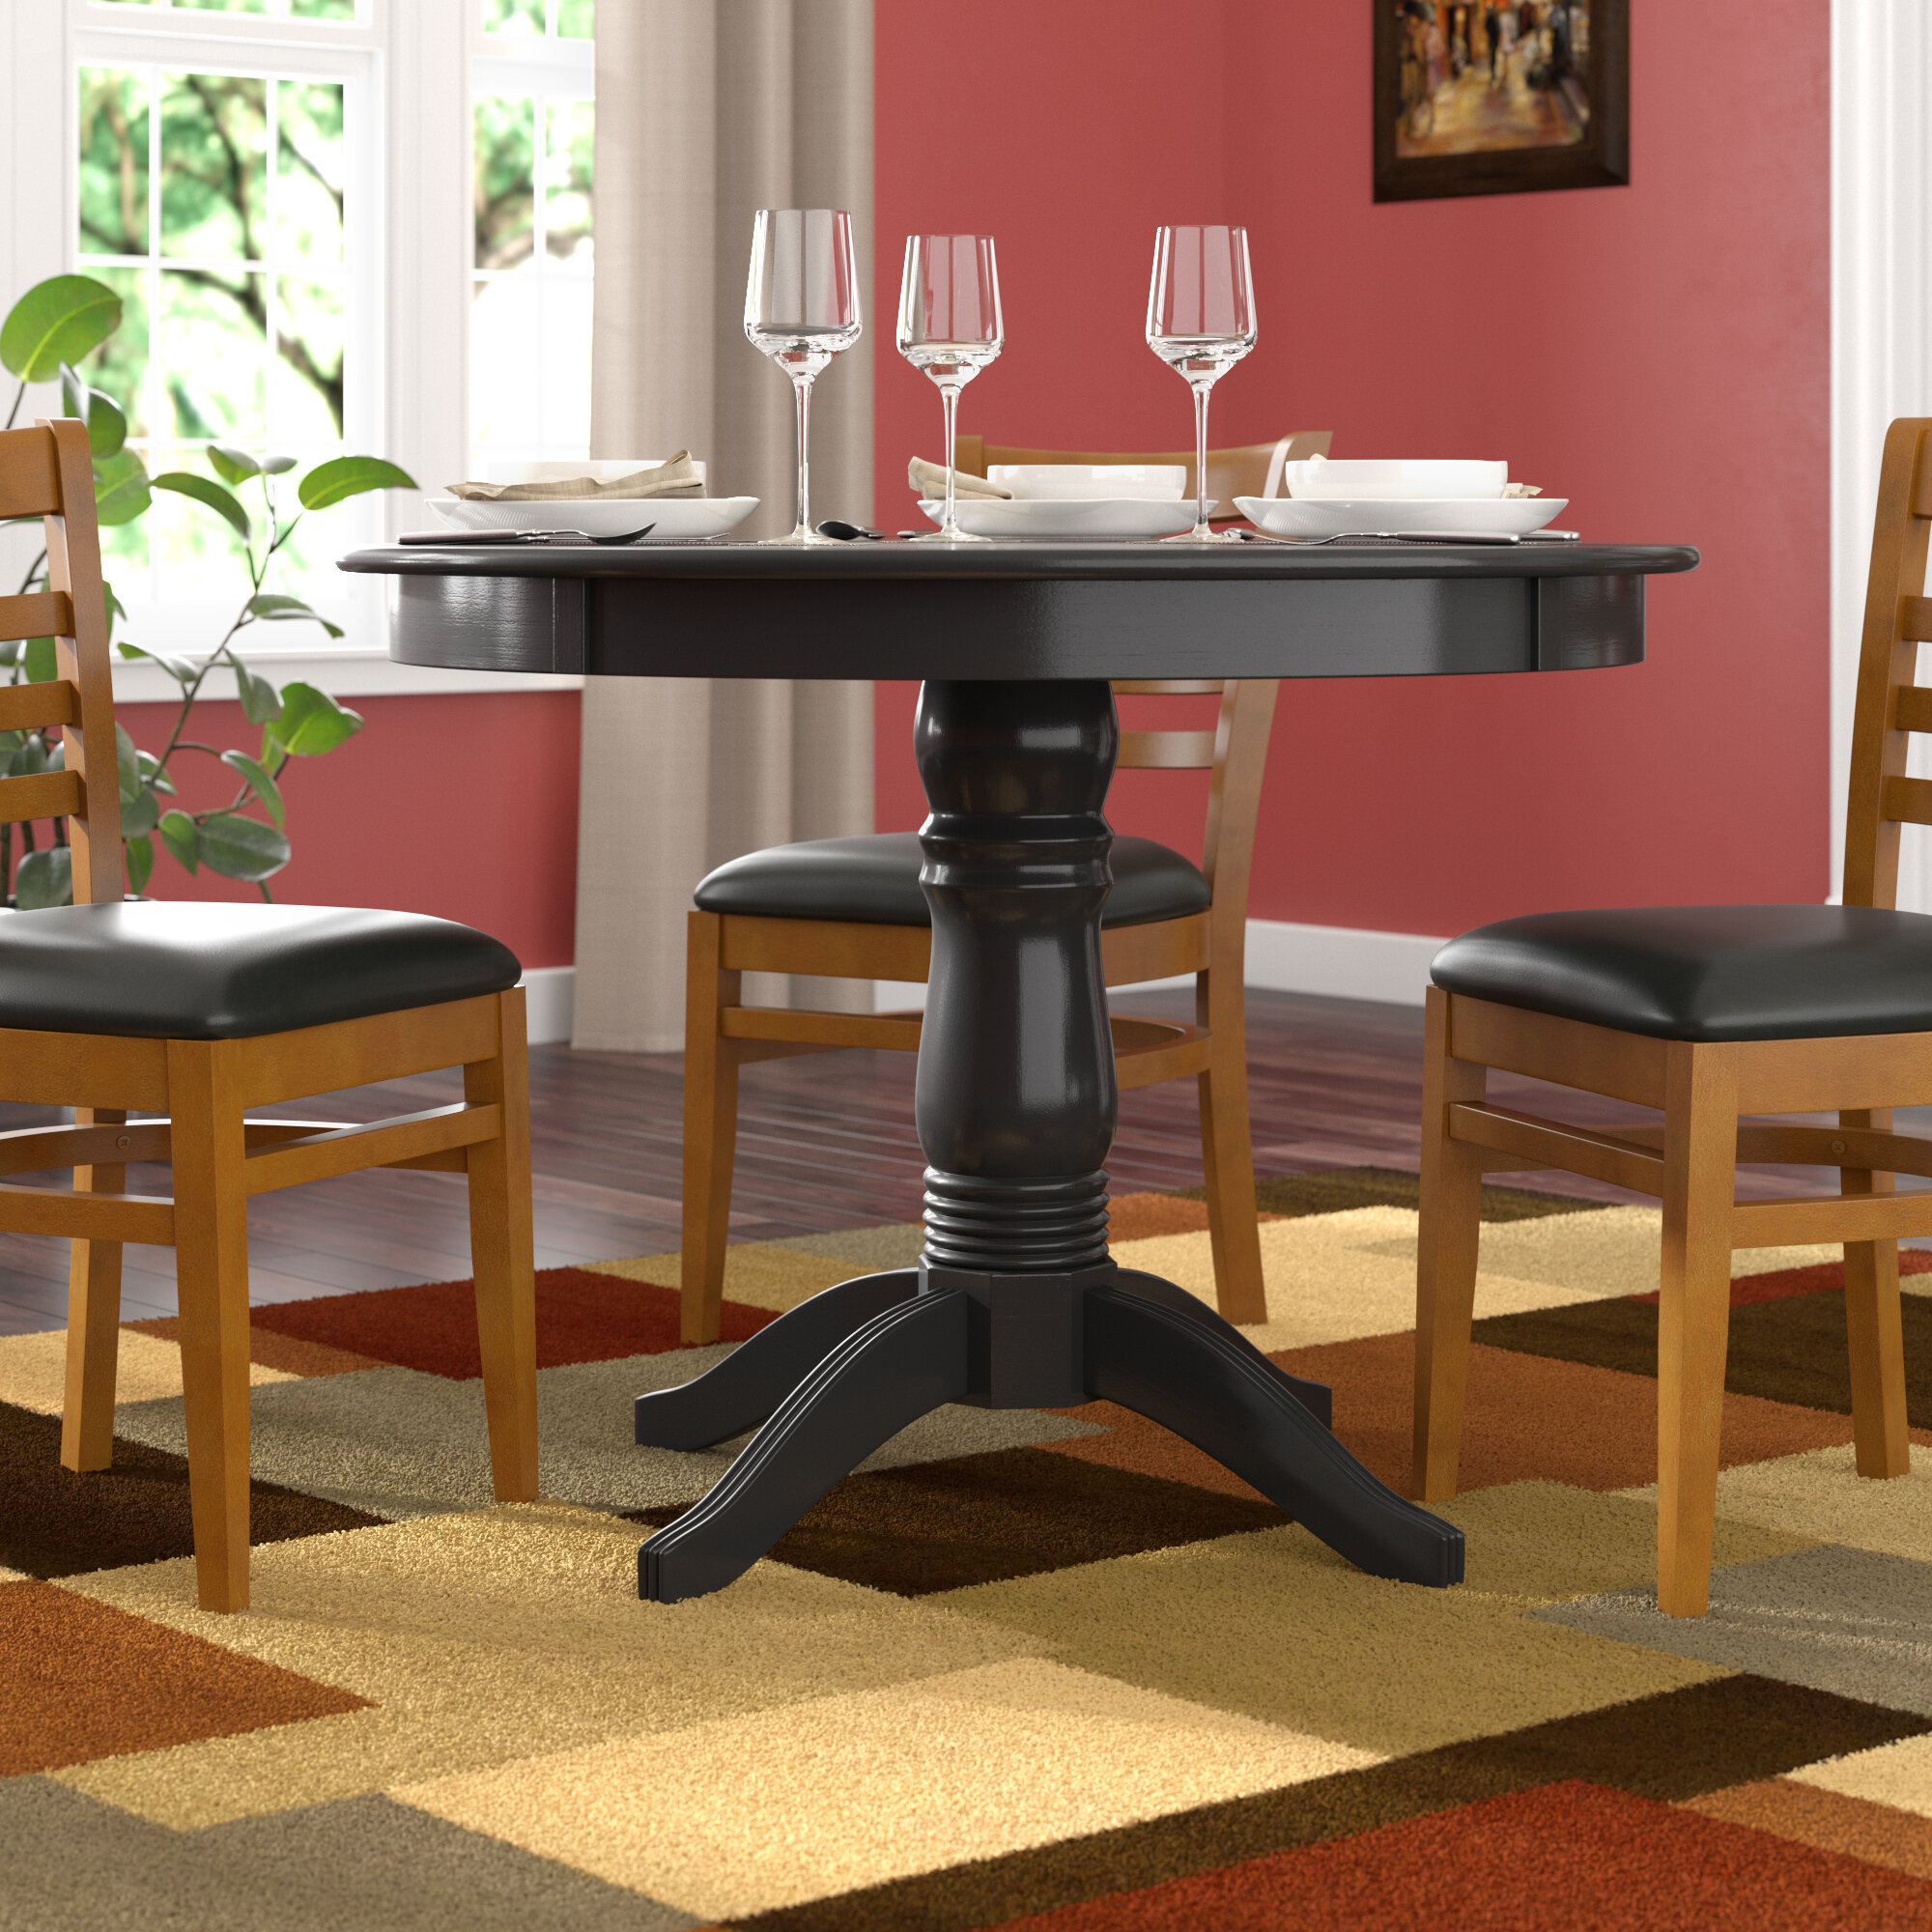 Black Kitchen Dining Tables You Ll Love In 2021 Wayfair